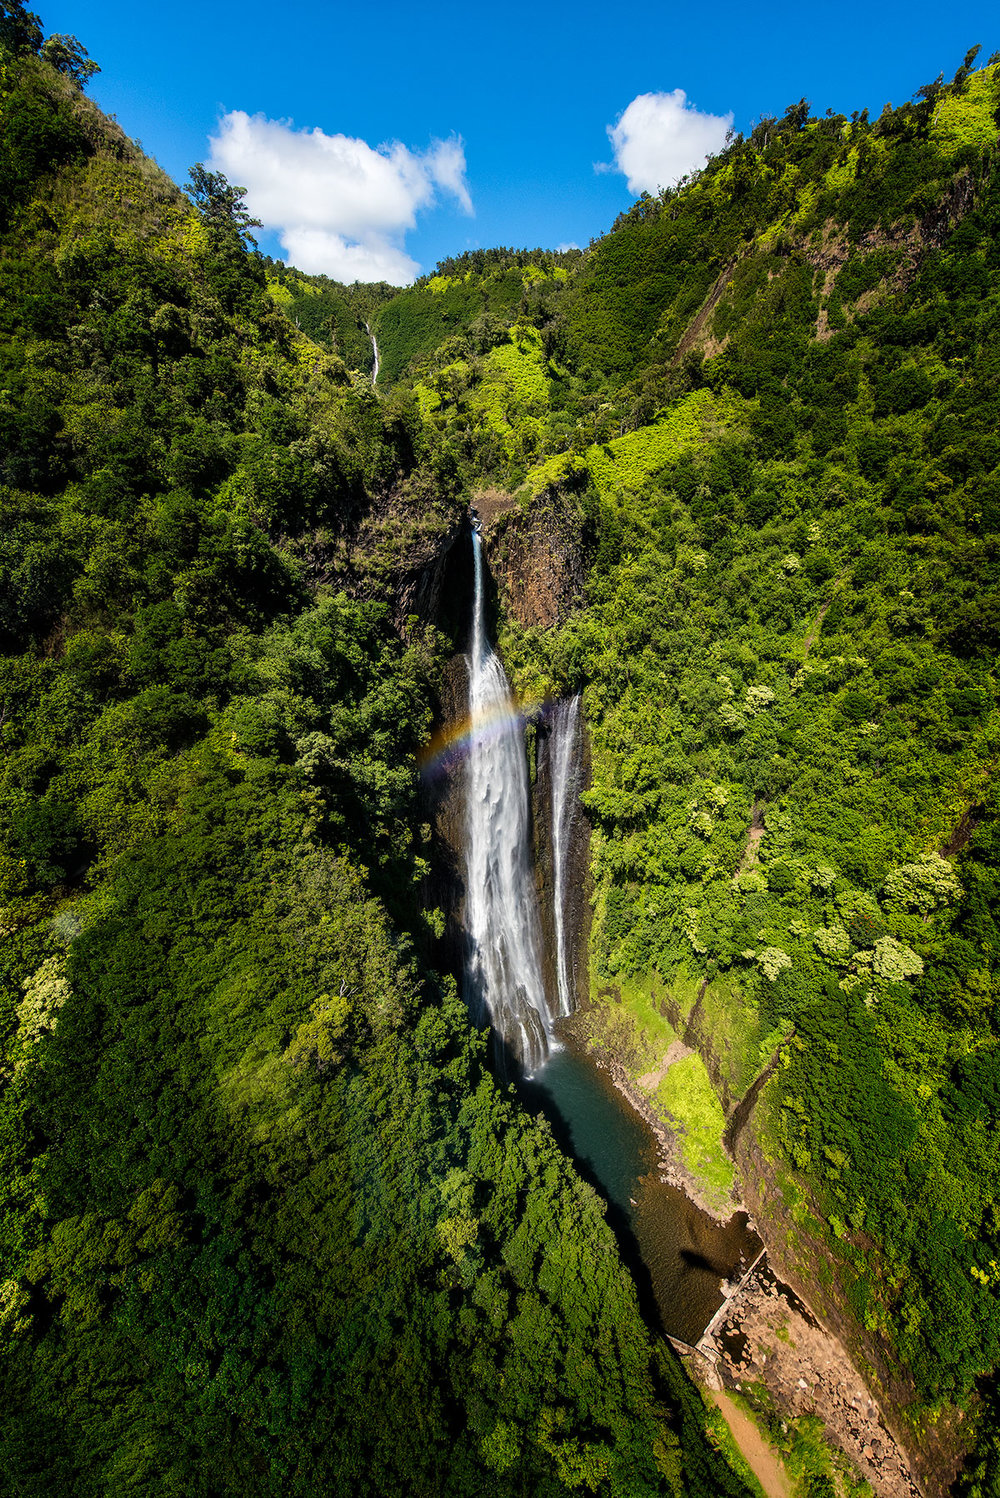 austin-trigg-brave-wilderness-kauai-hawaii-Jurrasic-Falls-helicopter.jpg